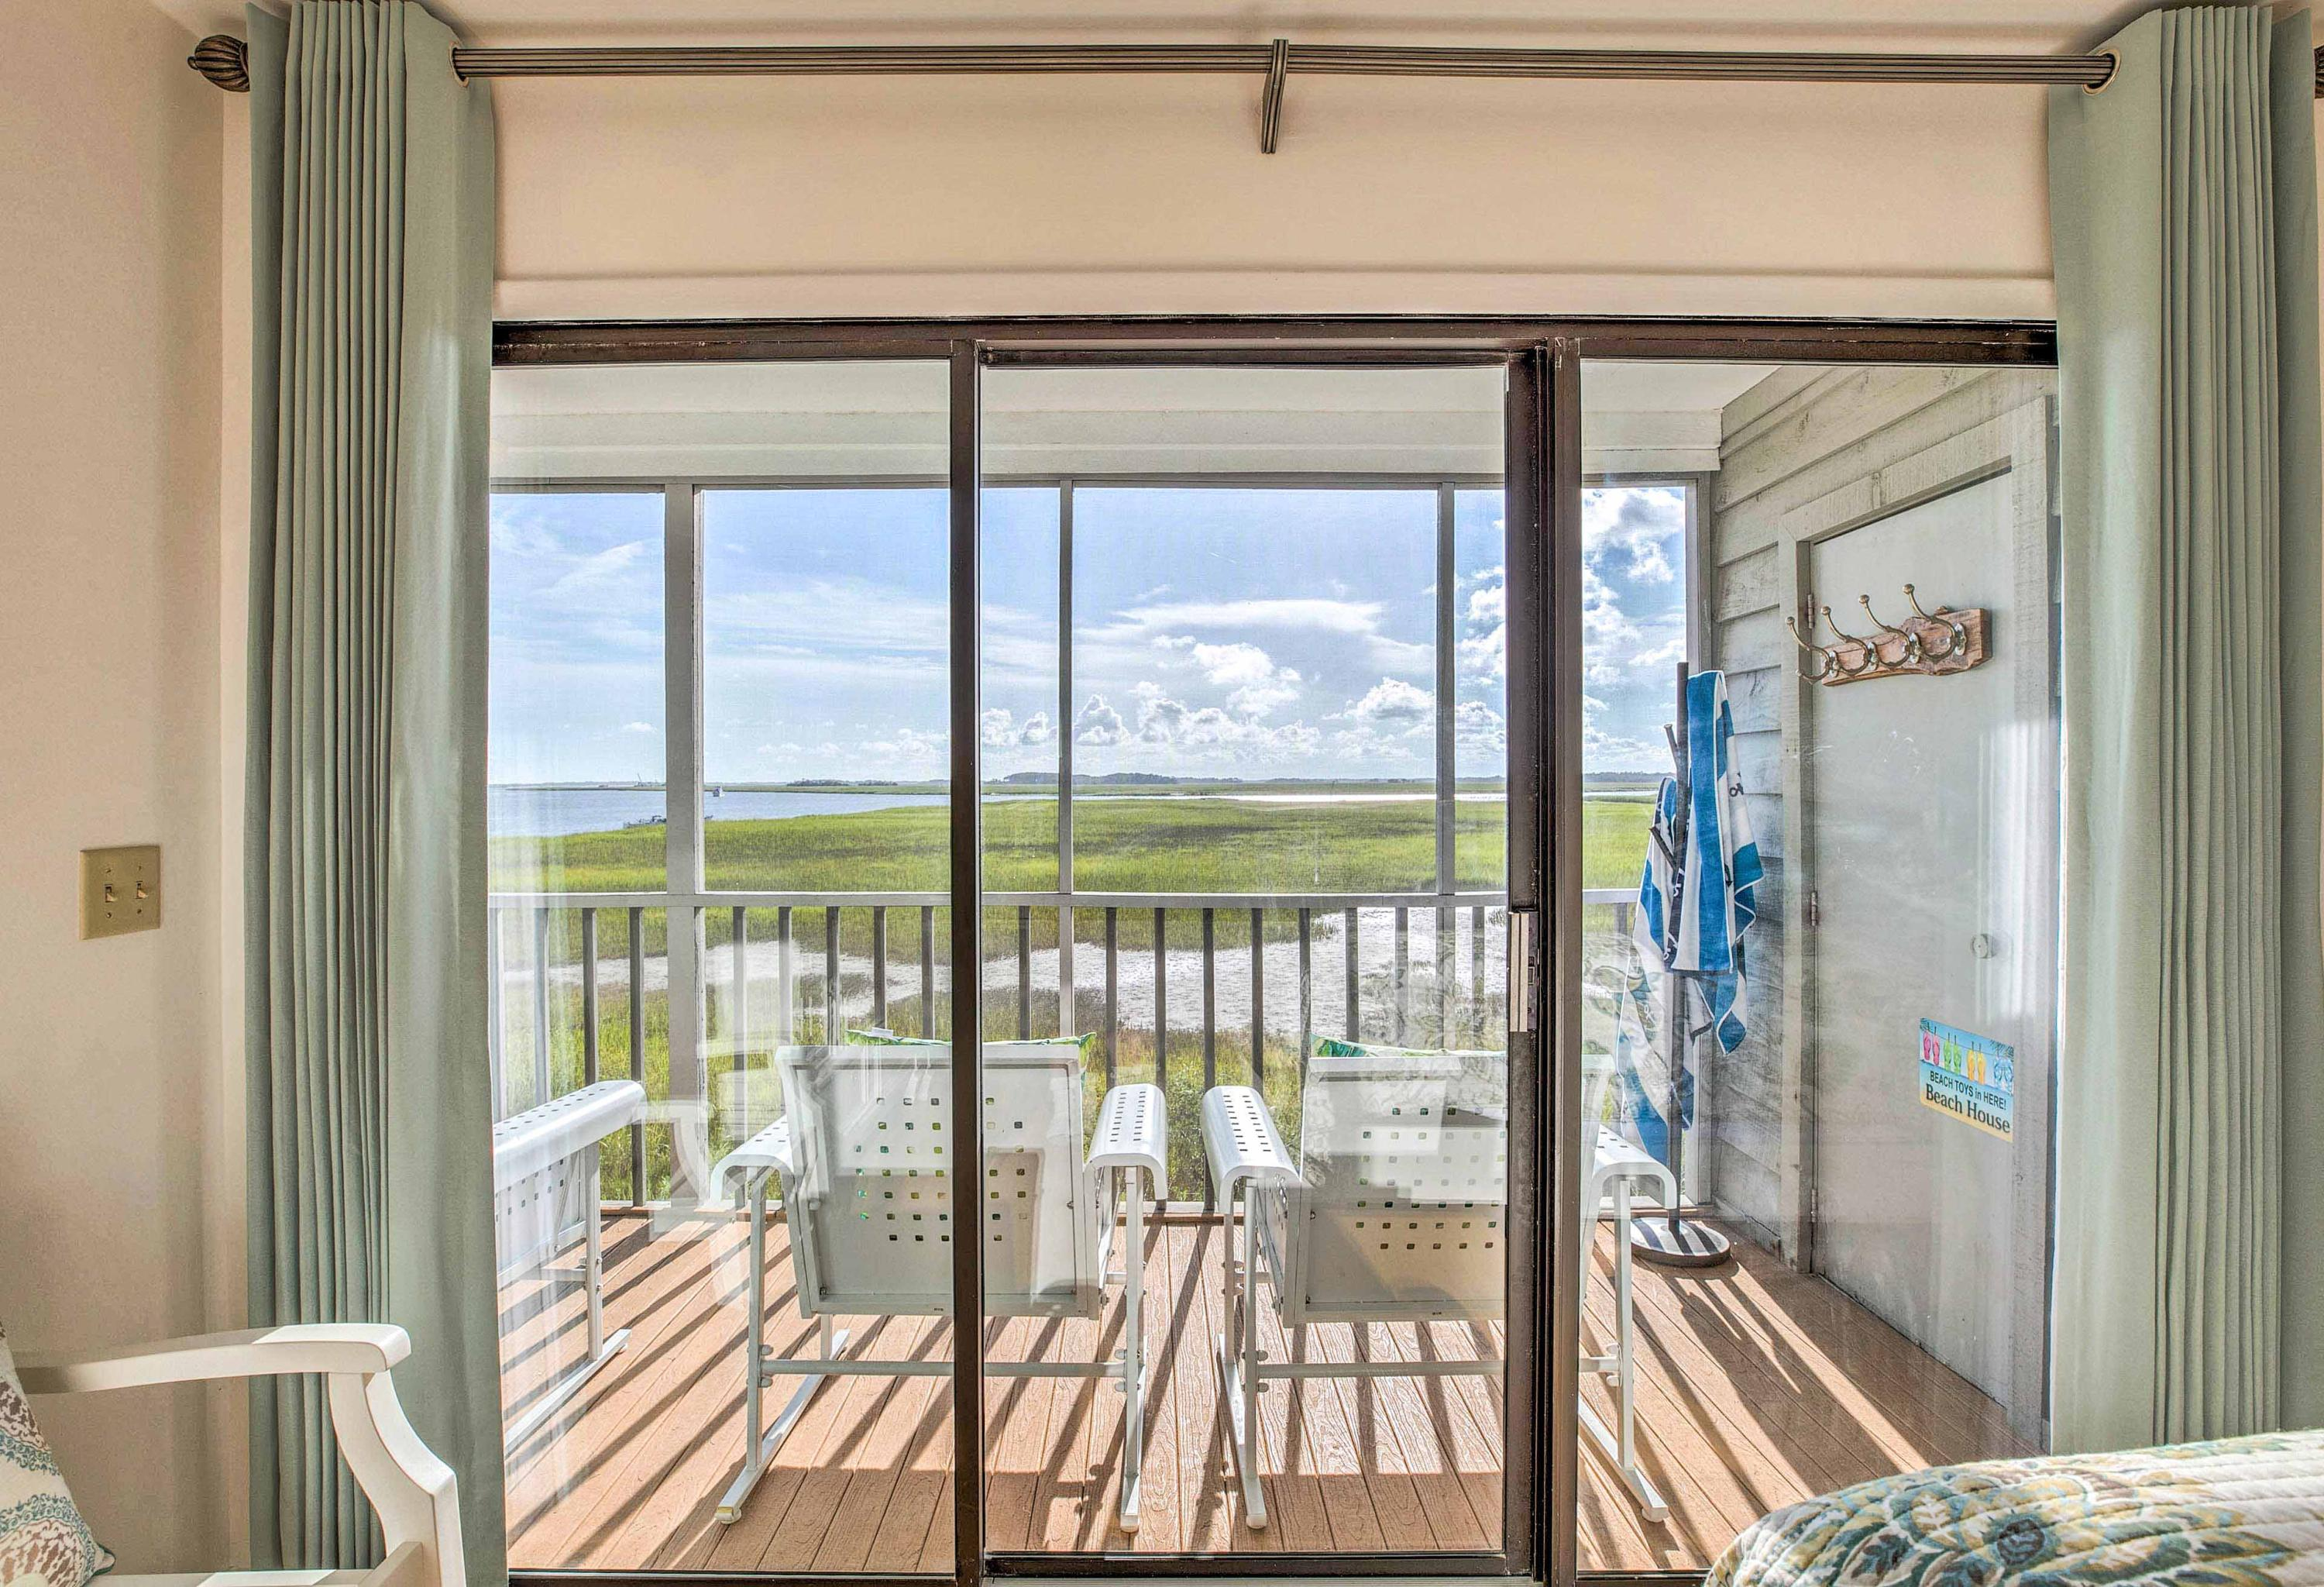 Mariners Cay Homes For Sale - 93 Mariners Cay, Folly Beach, SC - 20